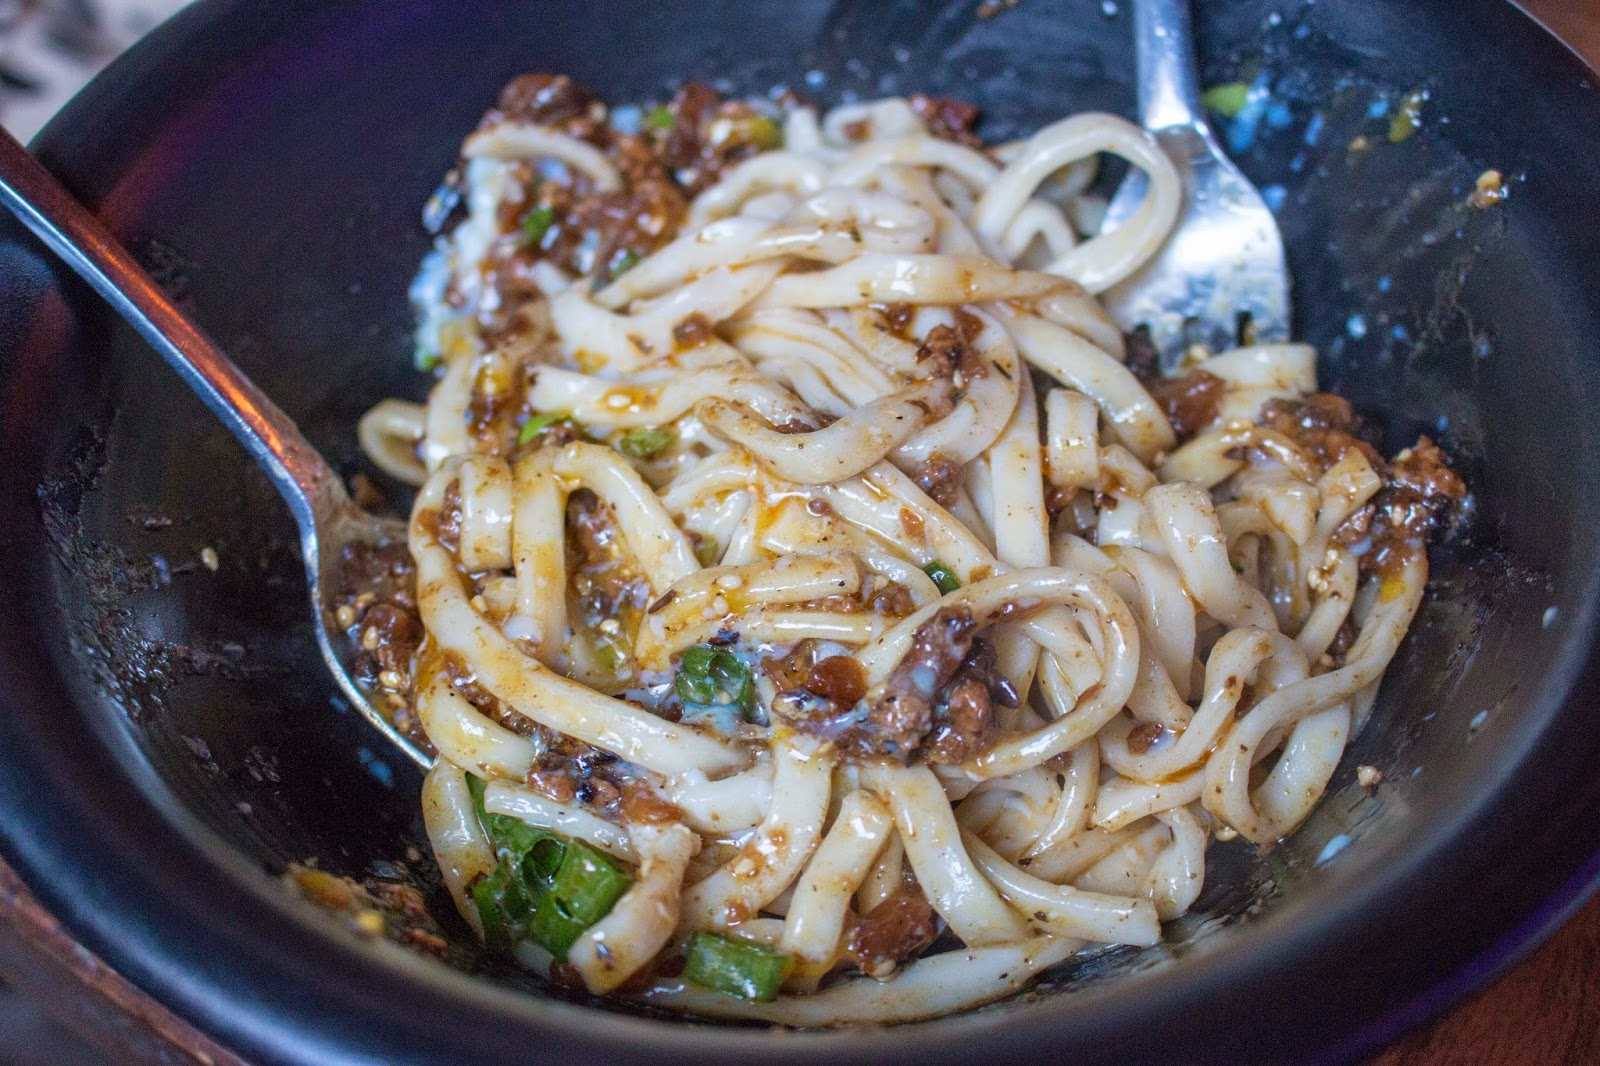 Philly Food Blog: Sampan Dan Dan Noodles